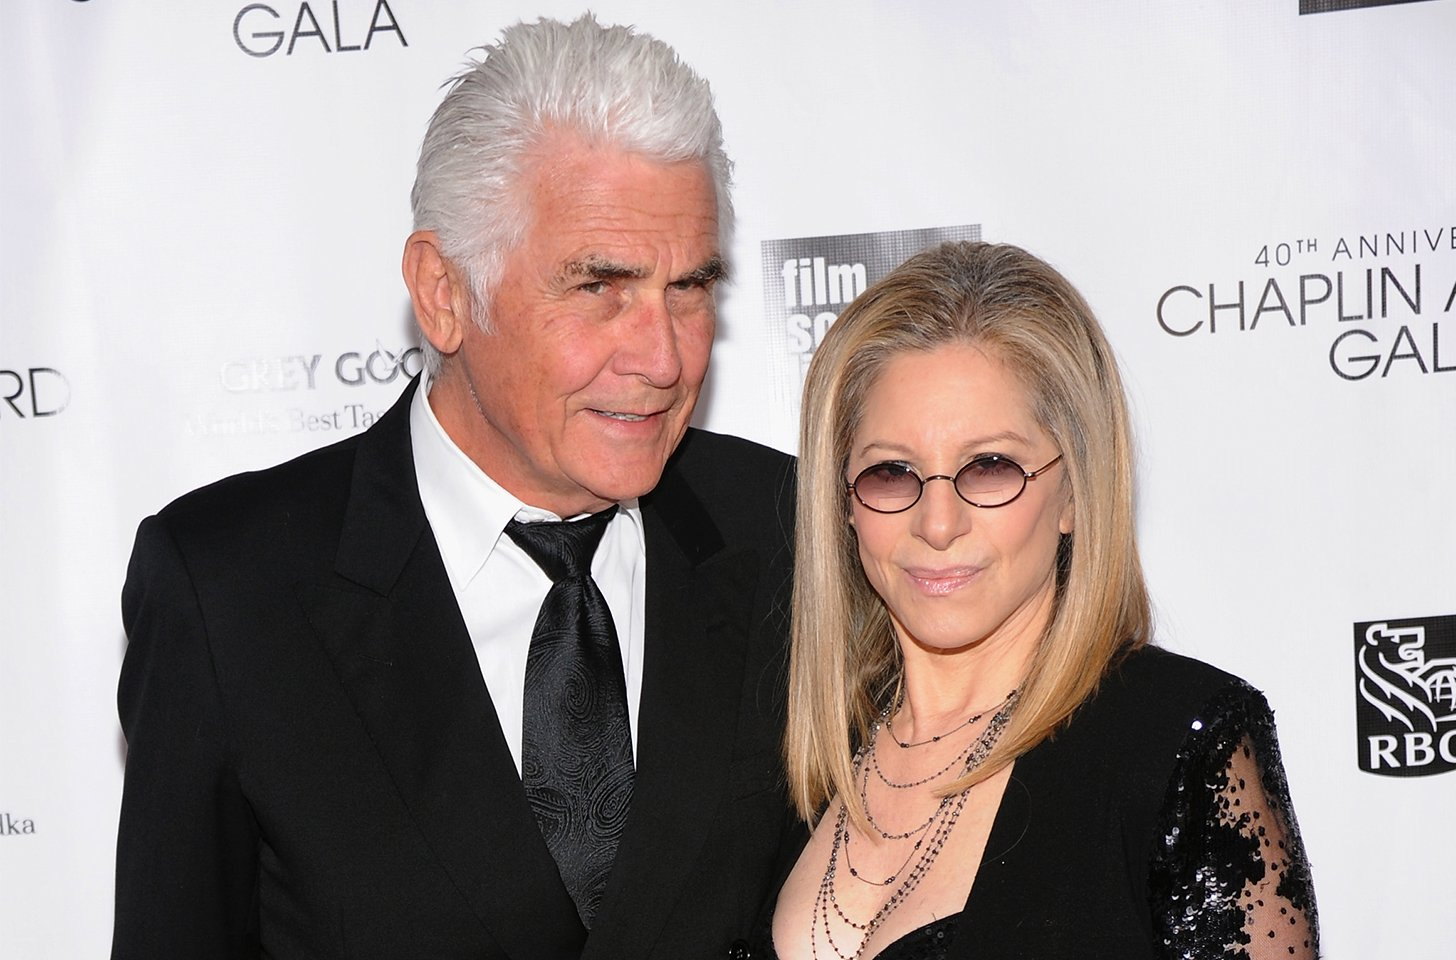 Barbra Streisand On The Brink Of Divorce And More Celebrity Gossip